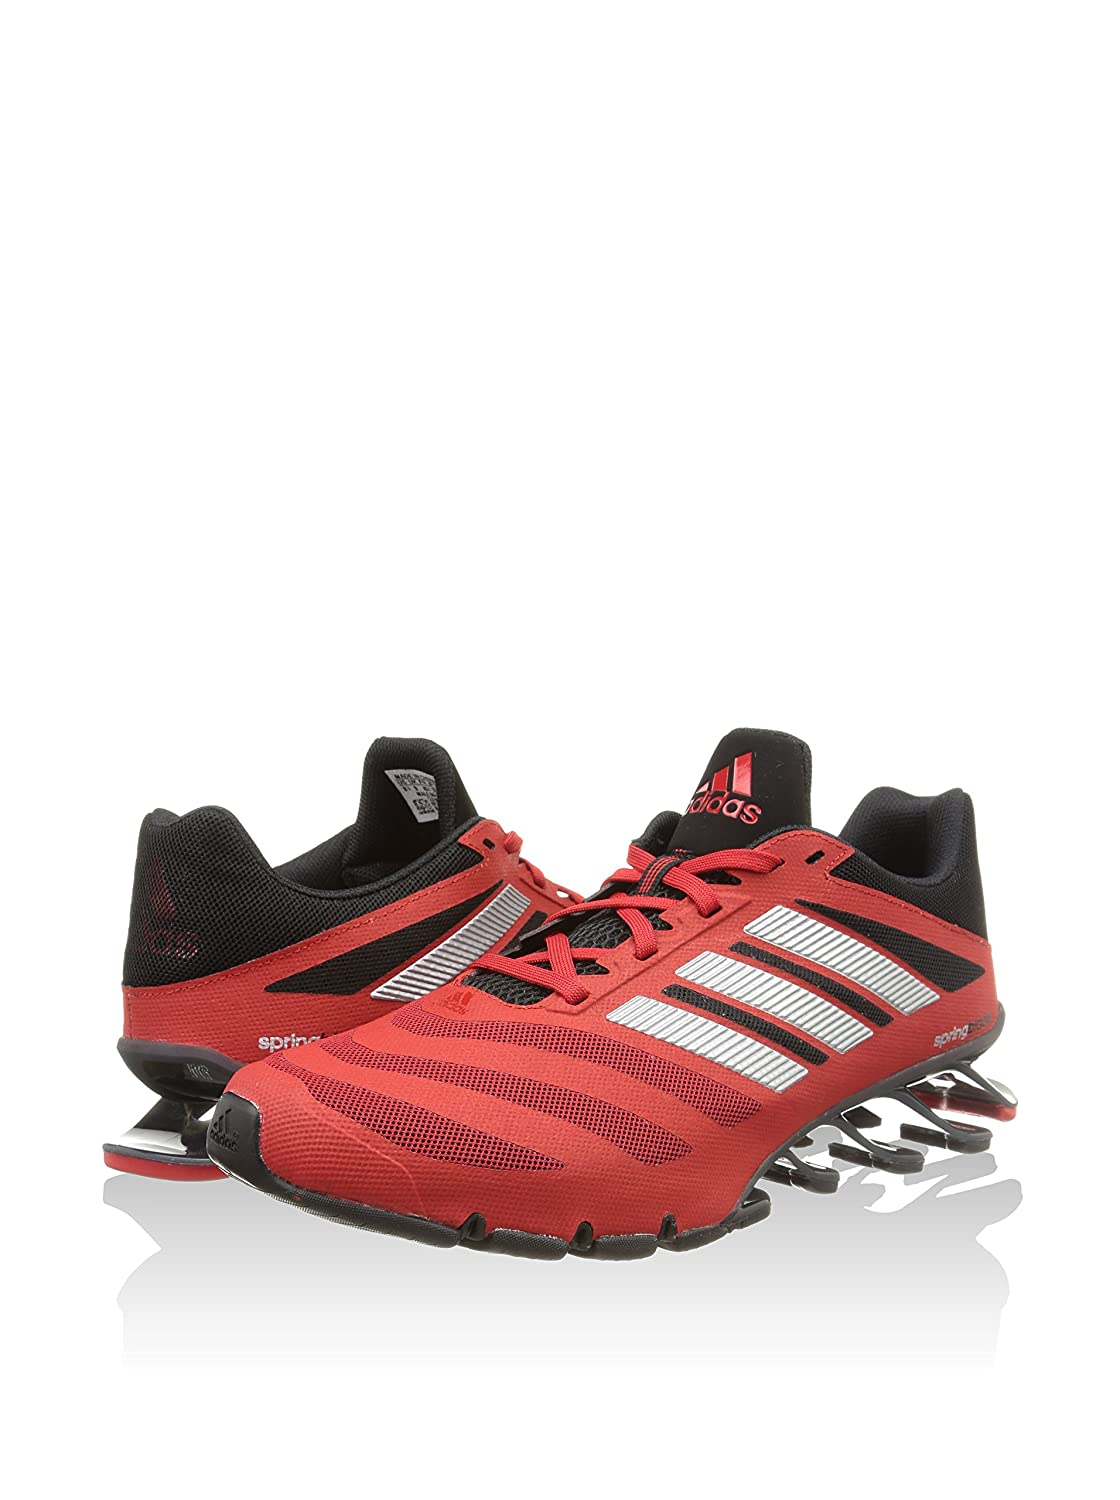 newest 66336 0b833 adidas Springblade Ignite Men's Running Shoes (red) - EU 44 - UK 9,5